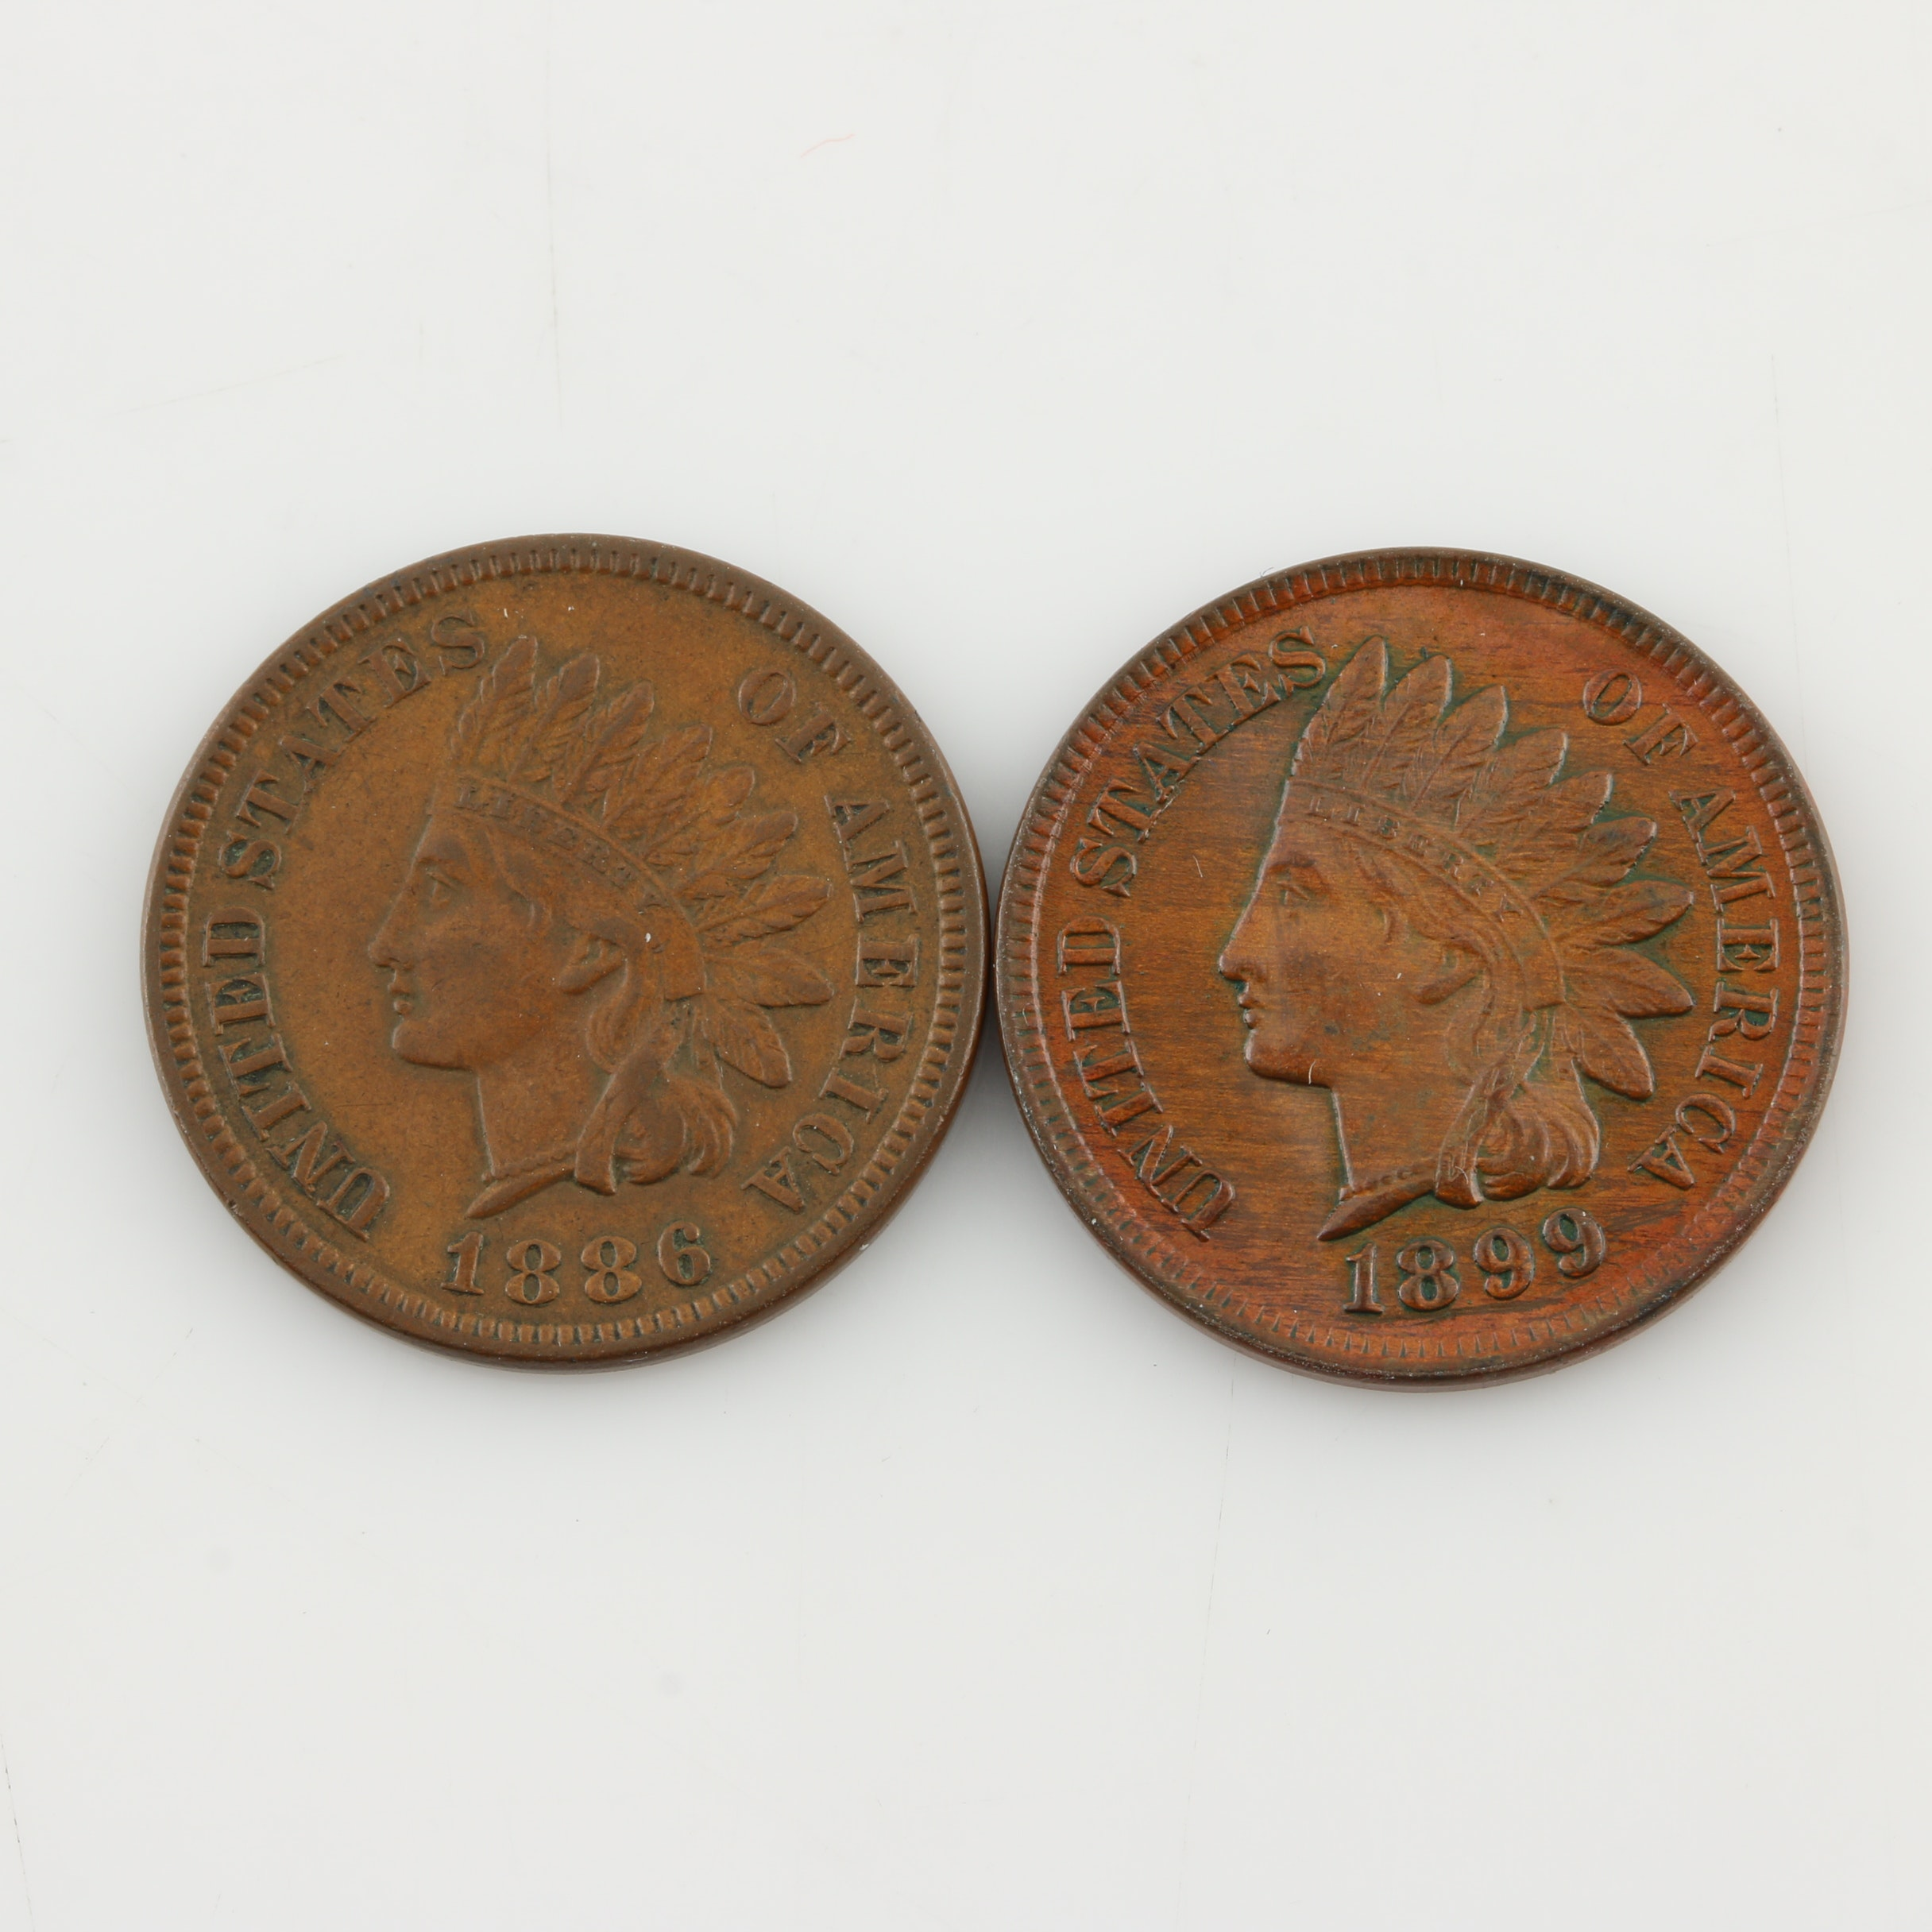 Two Indian Head Cents: 1886 and 1899